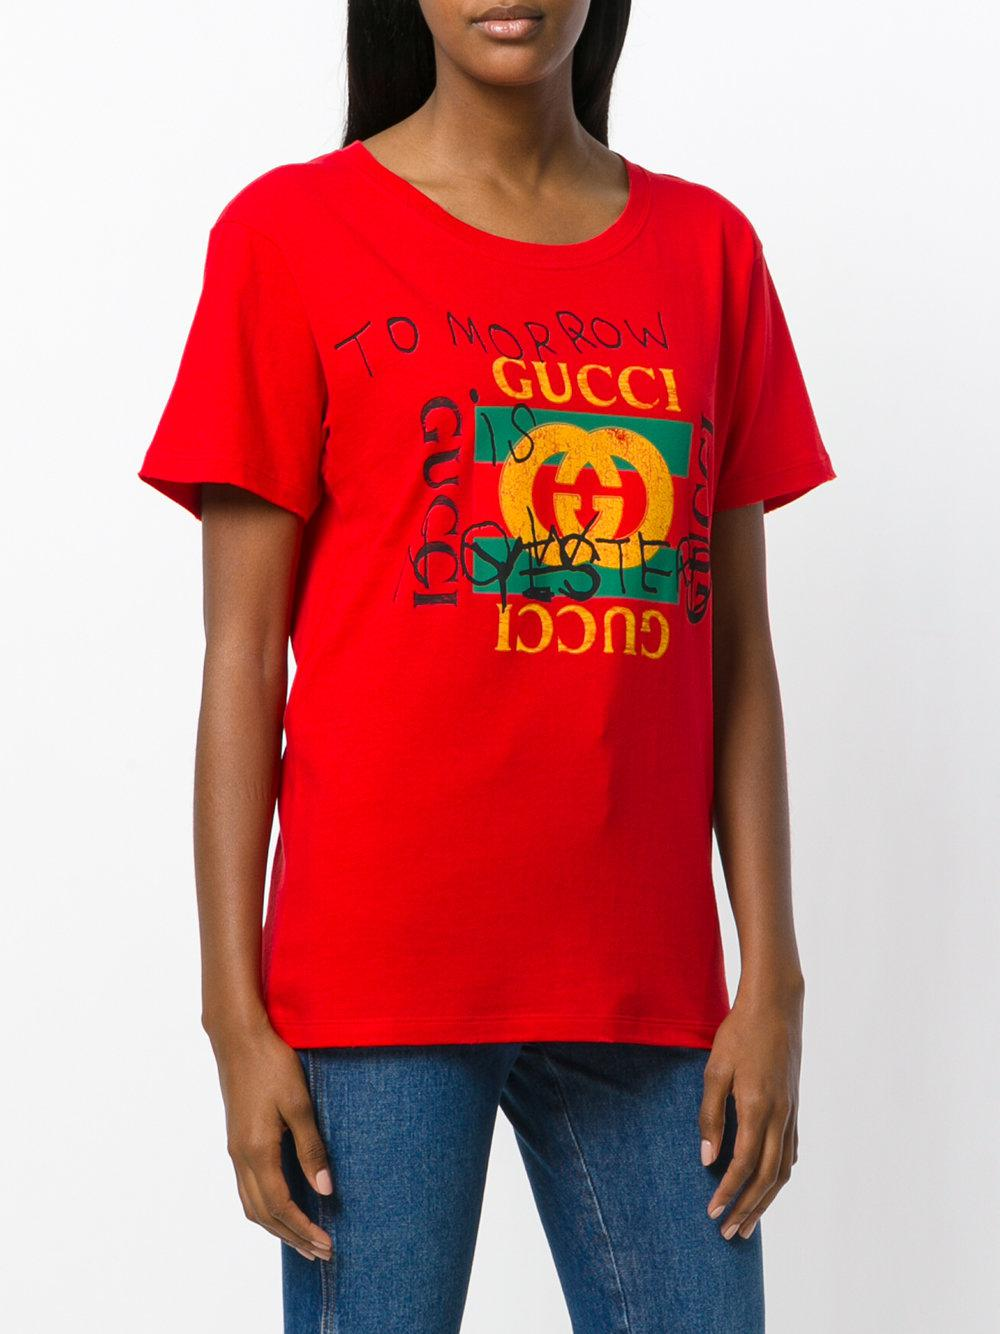 5f381730109d Lyst - Gucci Coco Capitán Logo T-shirt in Red